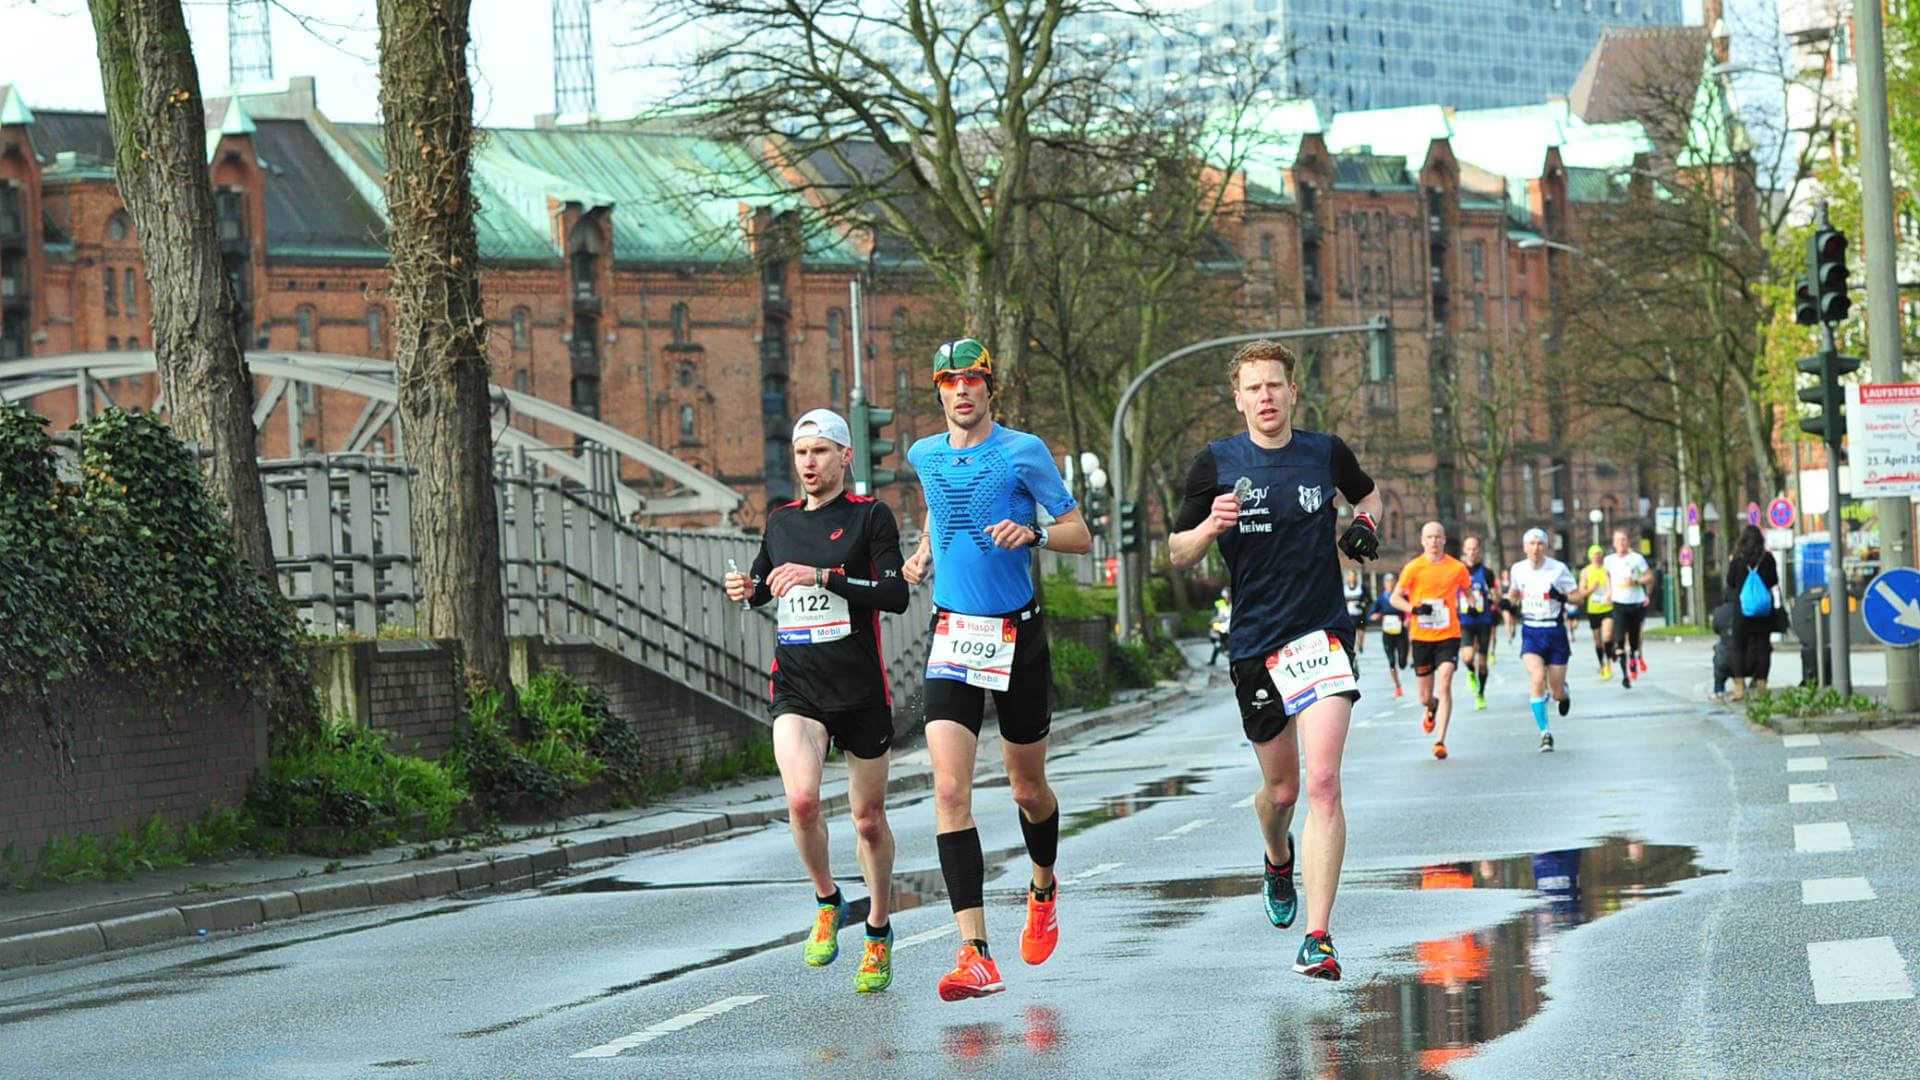 FloRuns running in front of the Elbphilharmonie